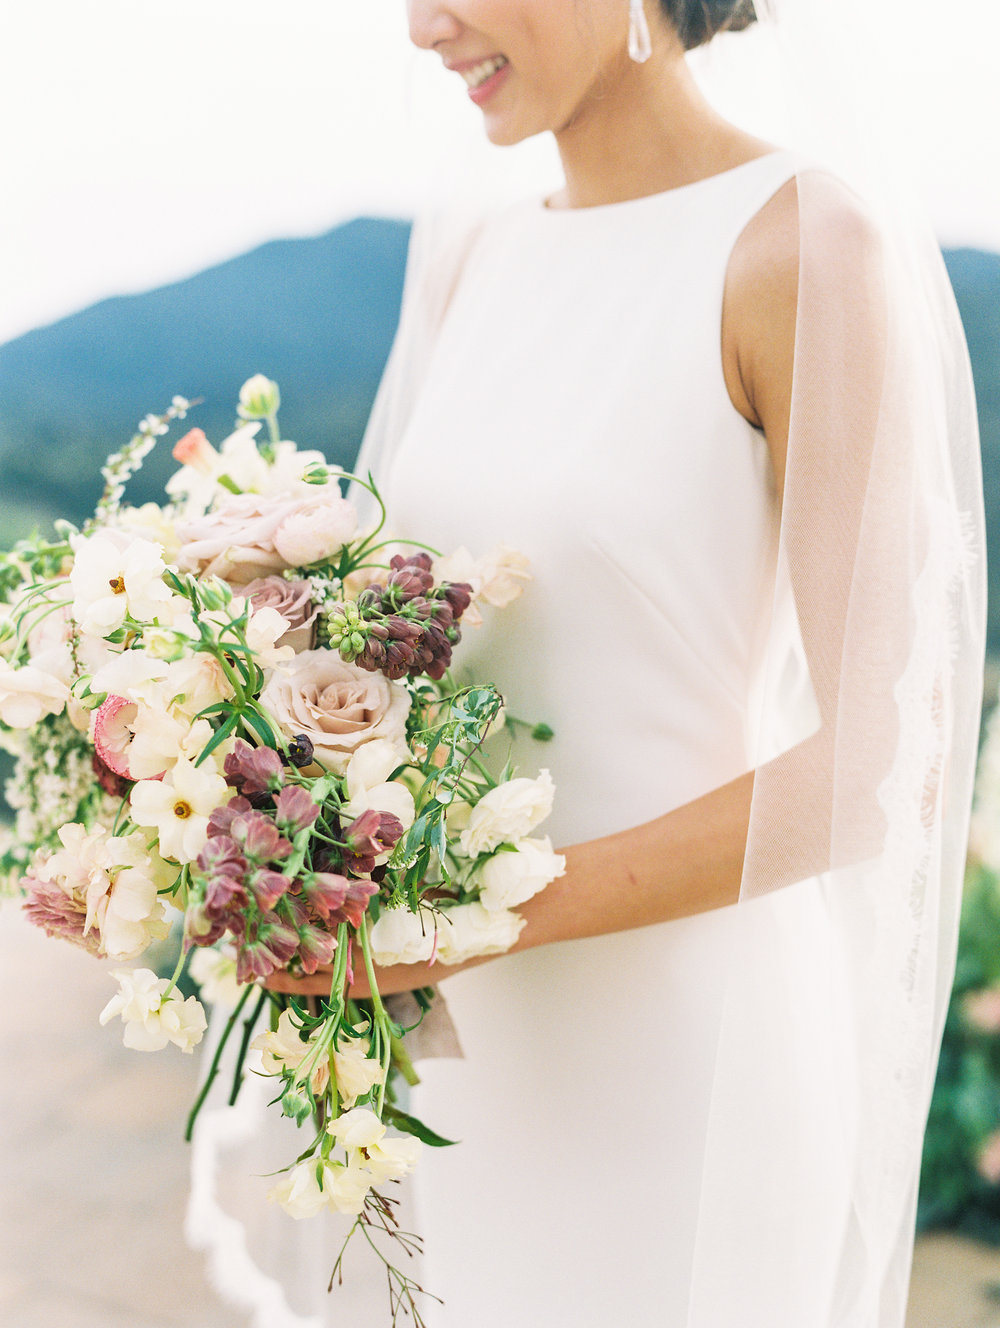 Spring Wedding at Romantic Hilltop Vineyard Malibu Rocky Oaks Sally Pinera Finding Flora Lush Bridal Bouquet Neutrals So Happi Together